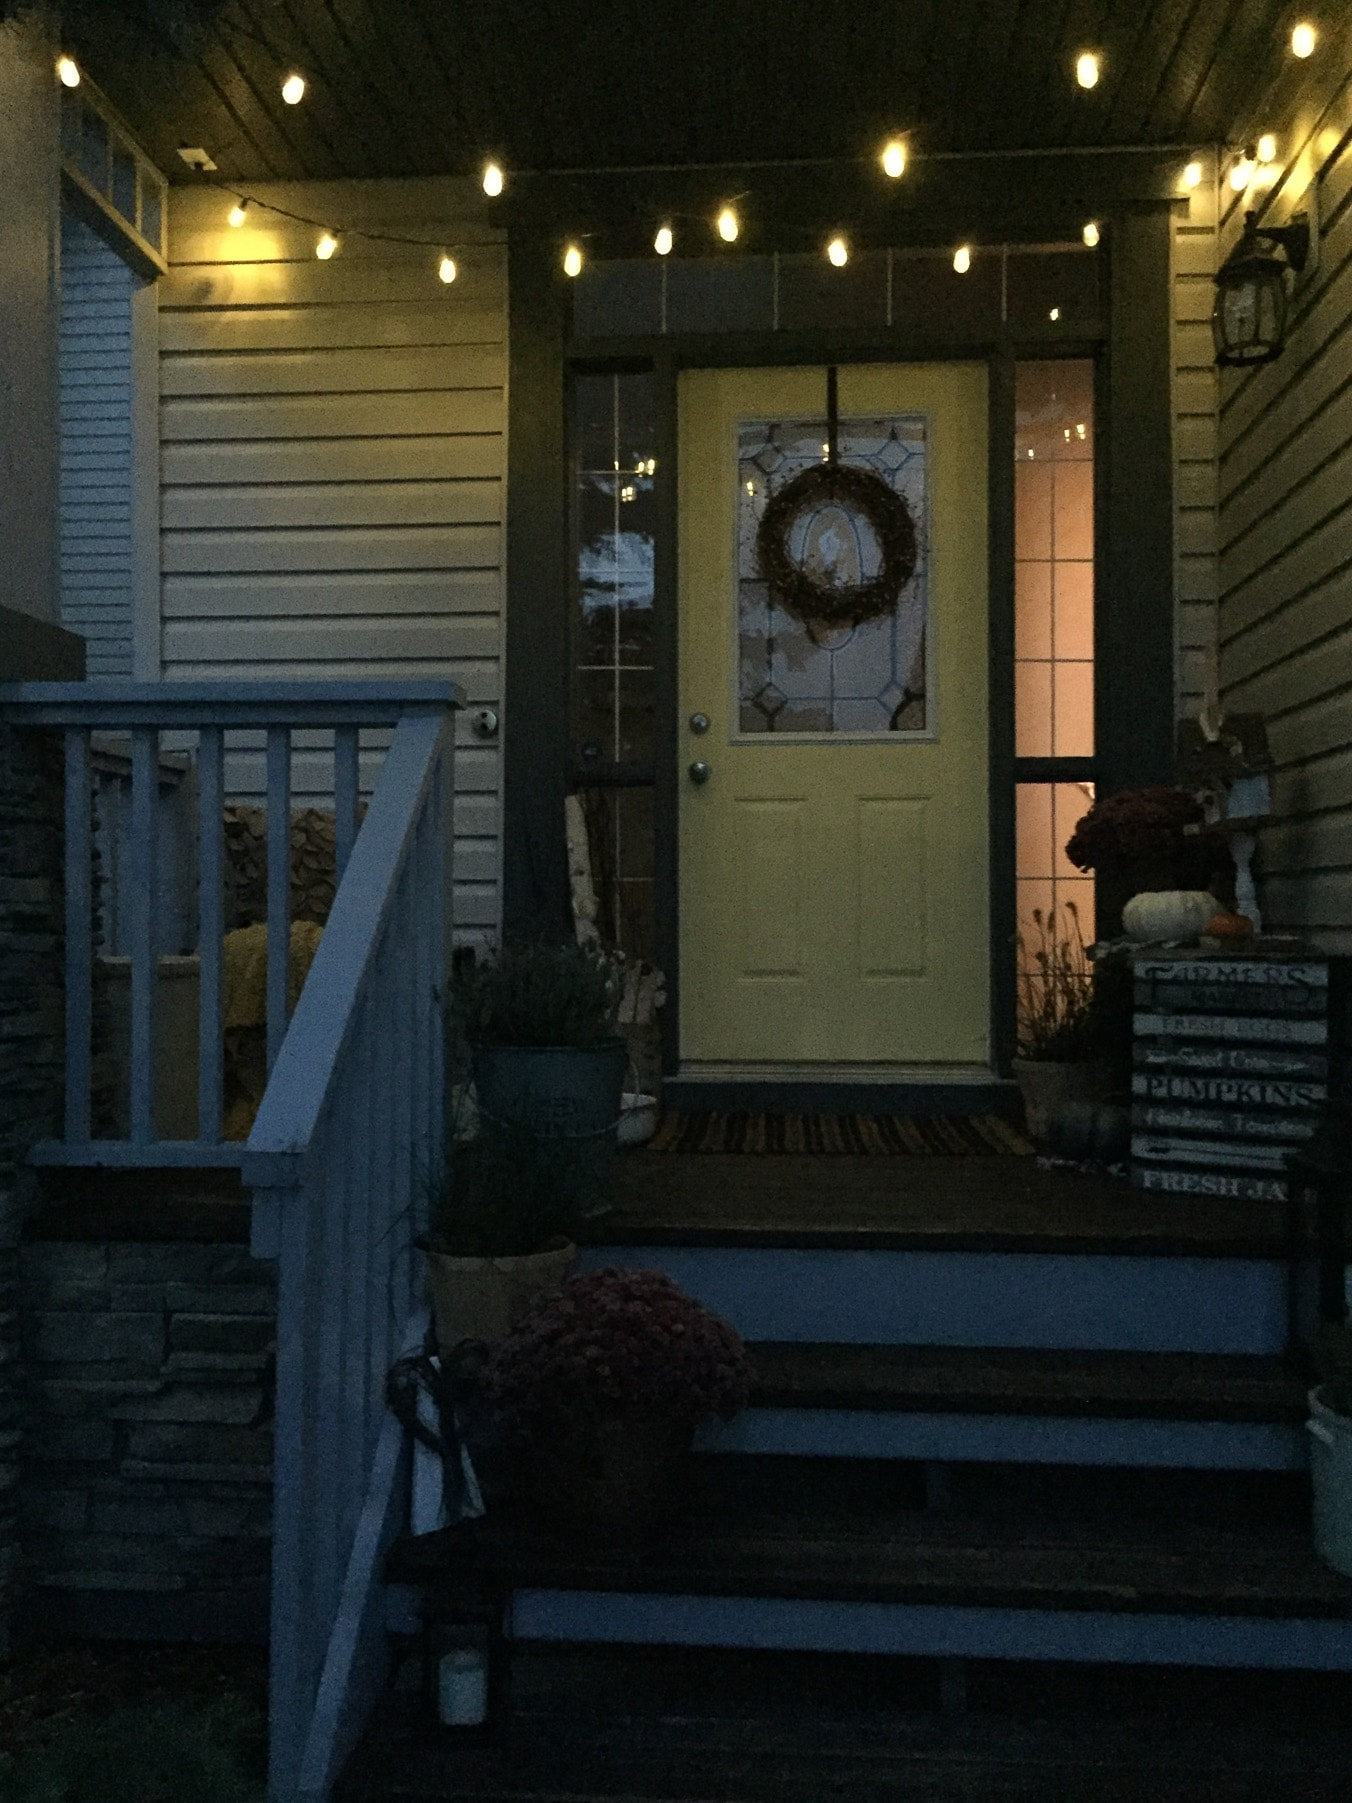 My Harvest Themed Fall Front Porch at Night